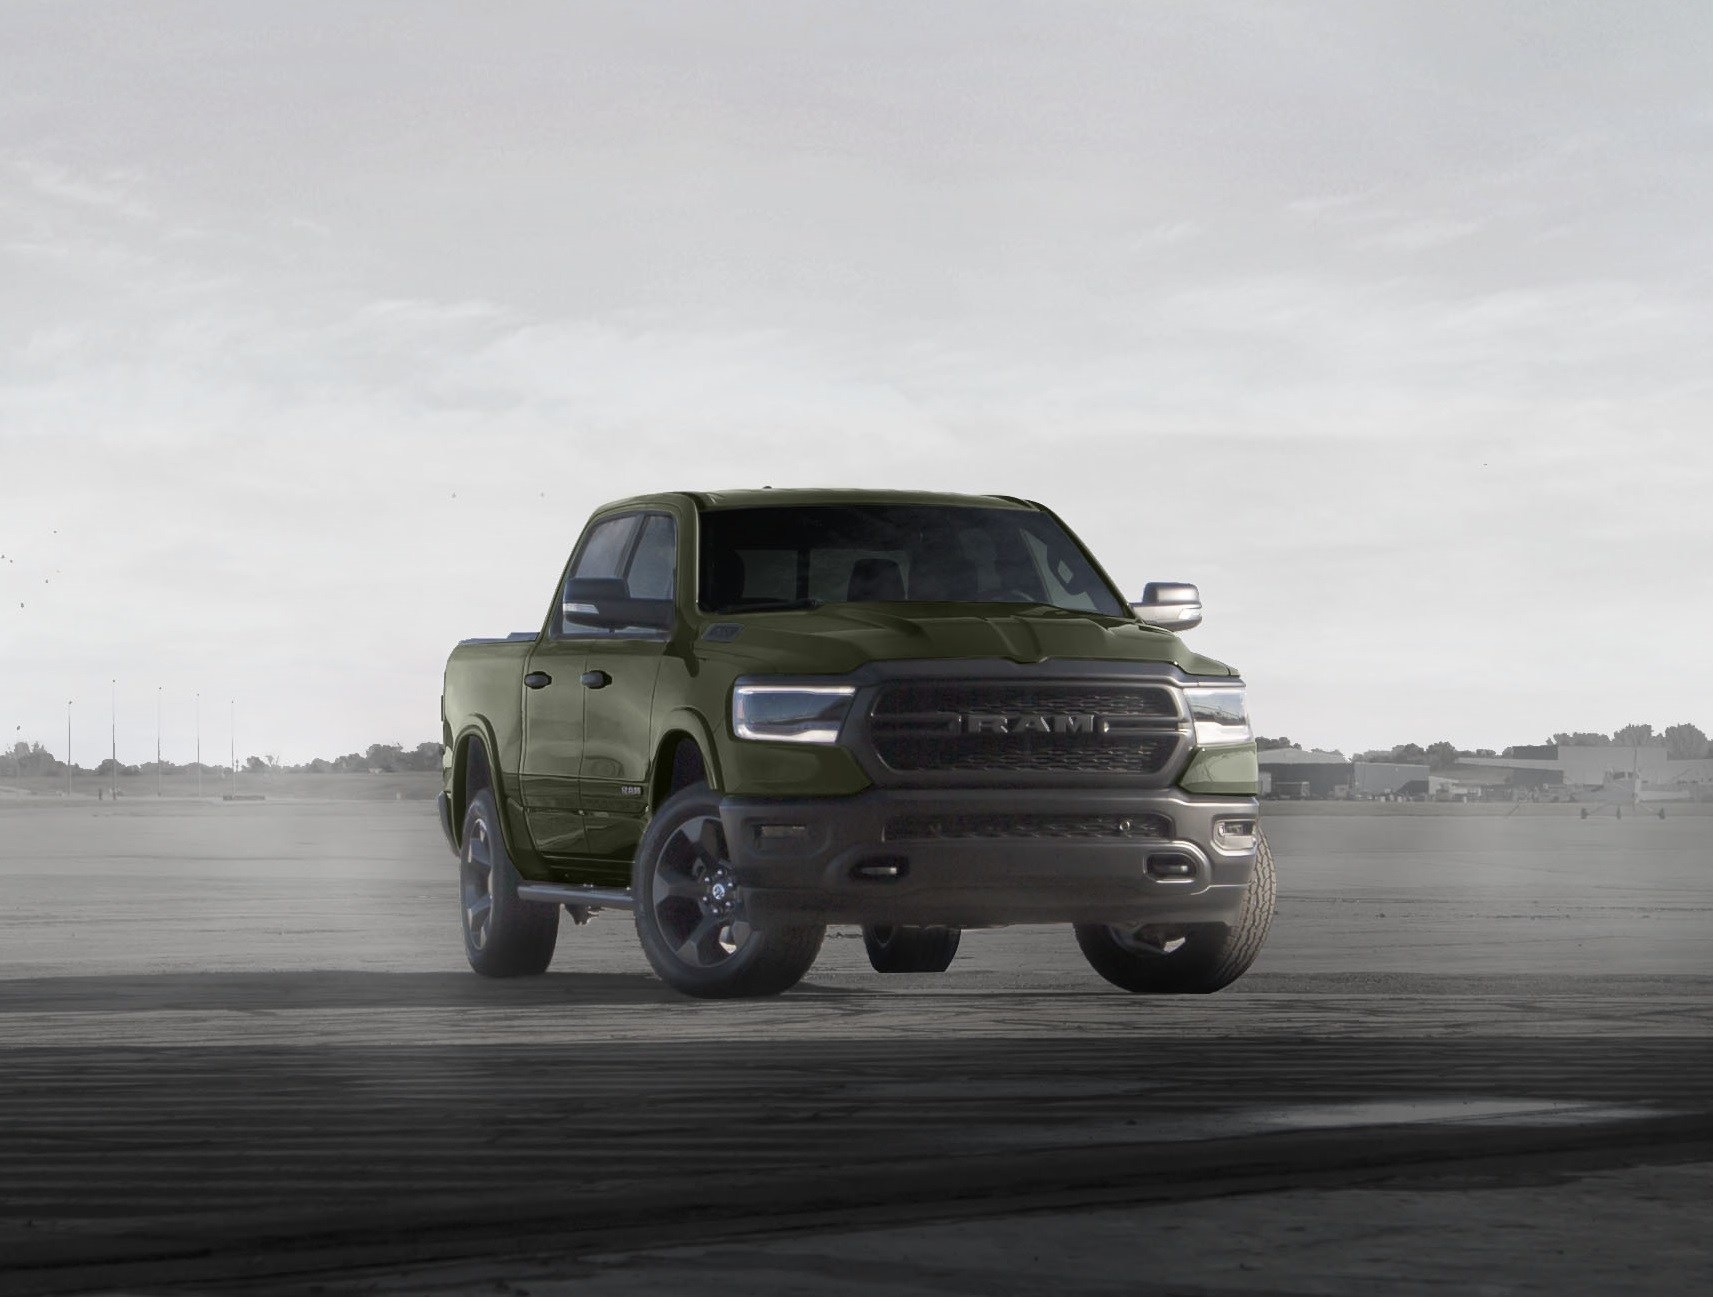 Ram Launches Fourth Phase of U.S. Armed Forces-inspired, Limited-edition 'Built to Serve' Trucks